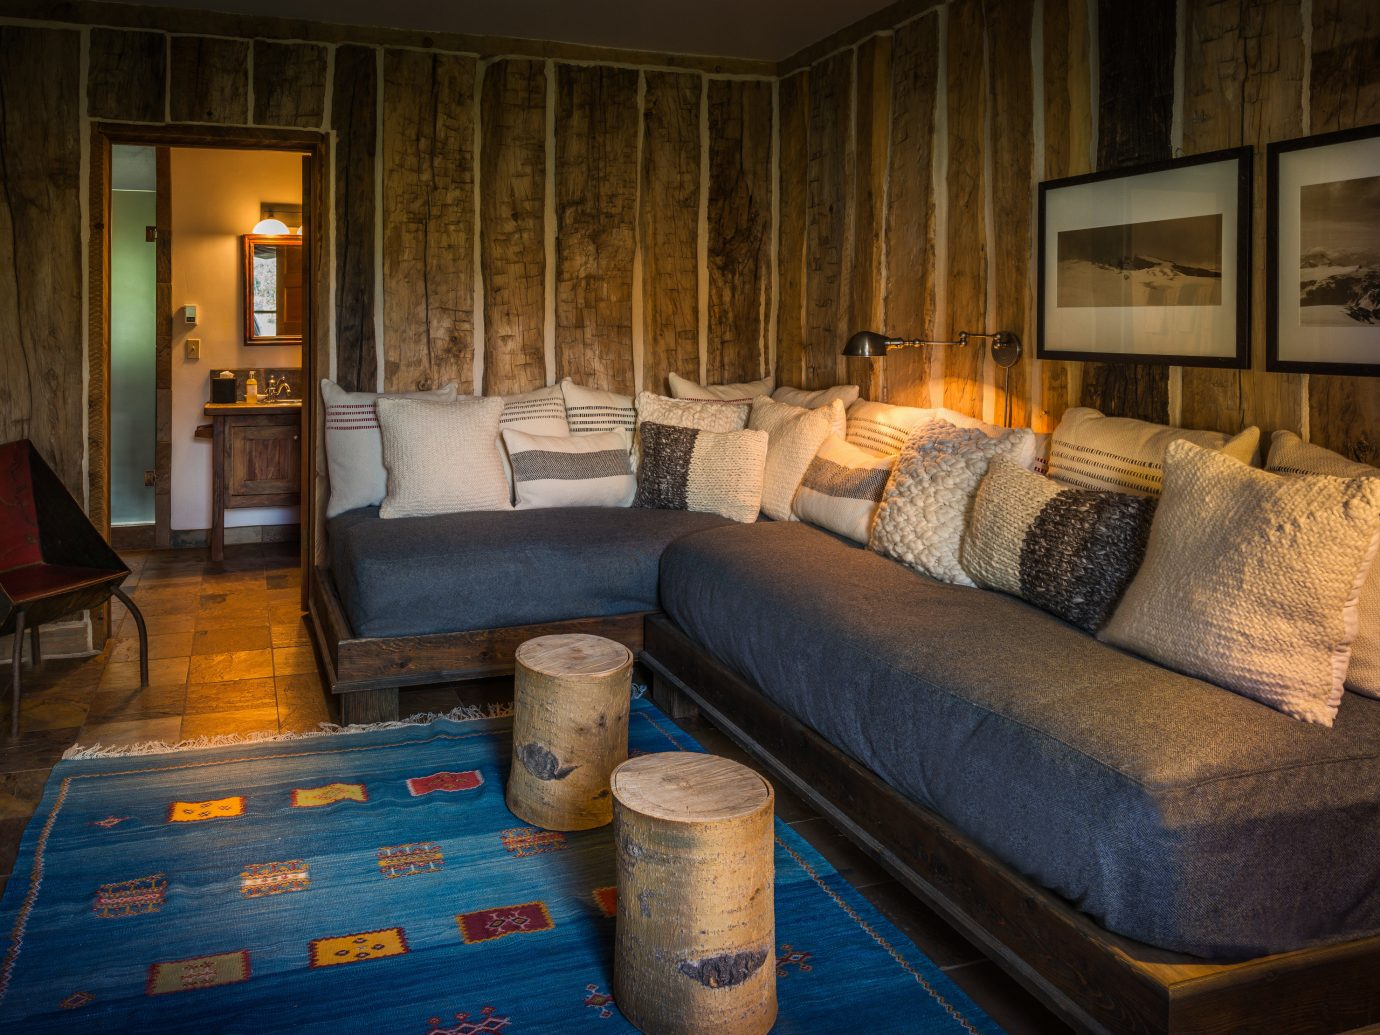 Boutique Hotels Fall Travel Hotels Outdoors + Adventure sofa Living indoor room floor living room interior design Suite furniture ceiling couch home real estate house seat